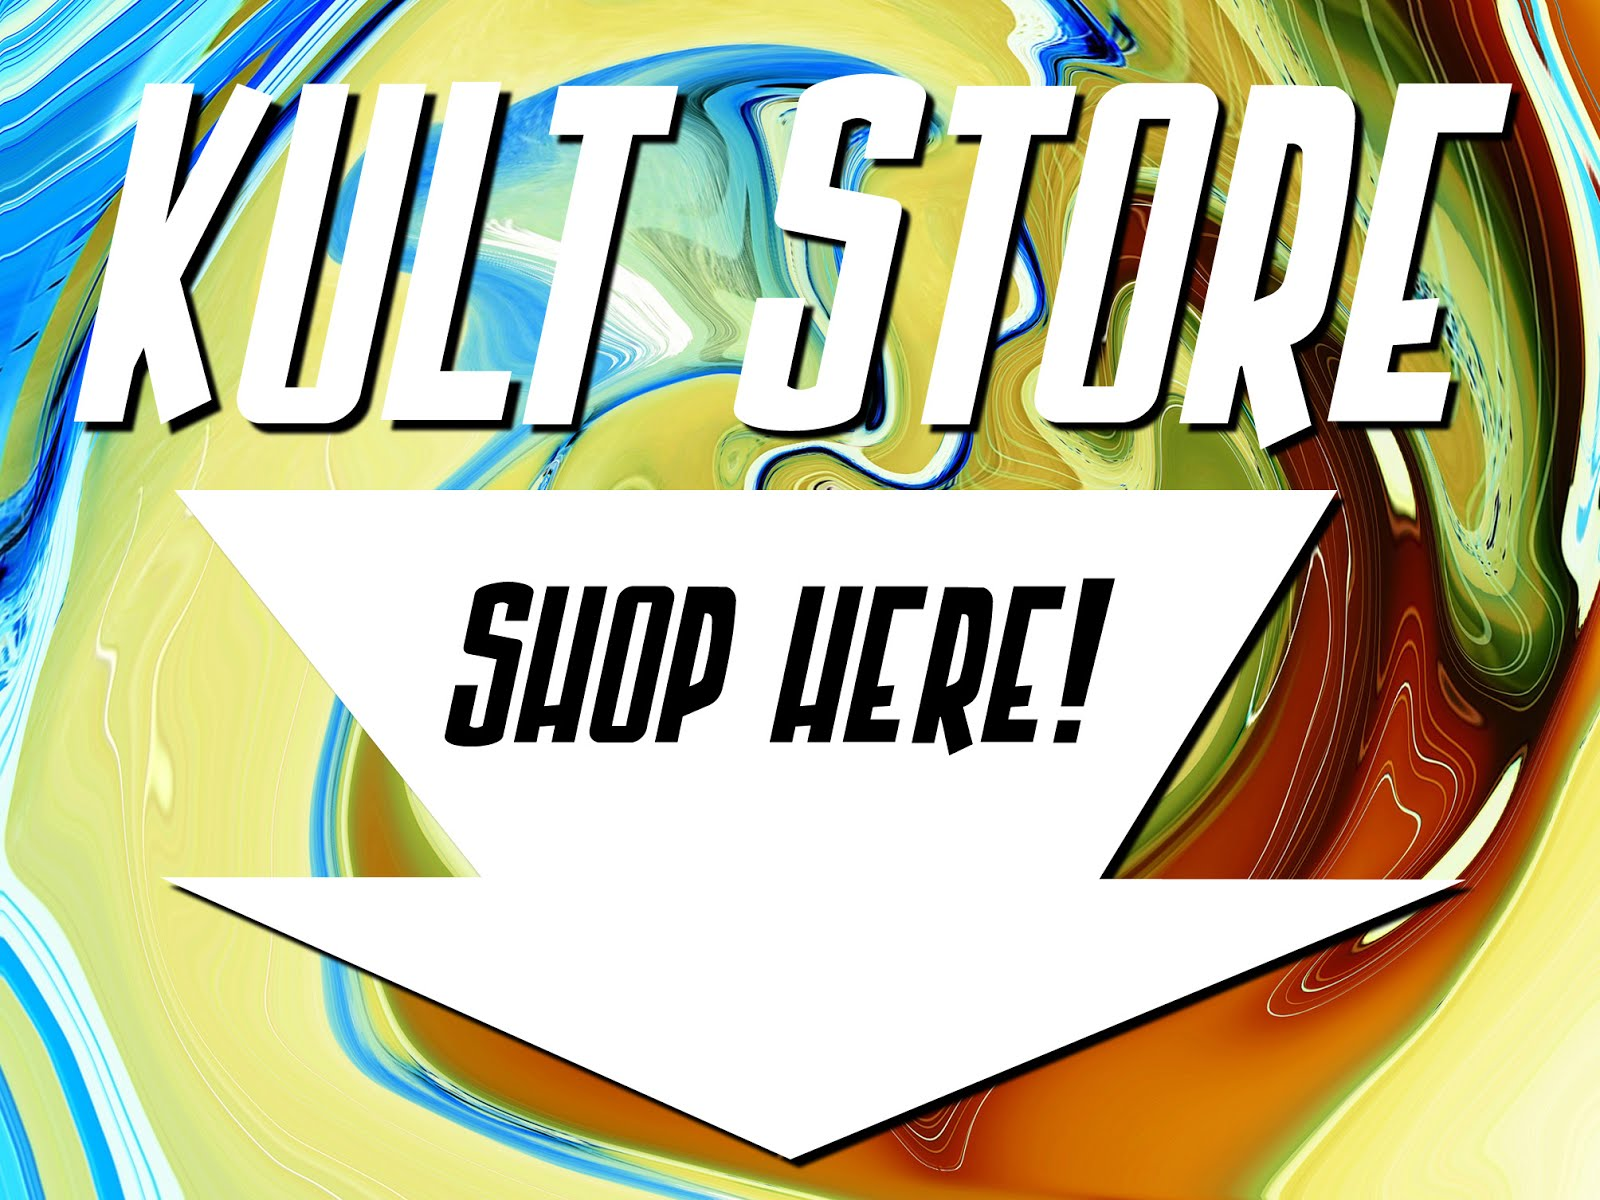 KULT STORE! SHOP HERE!